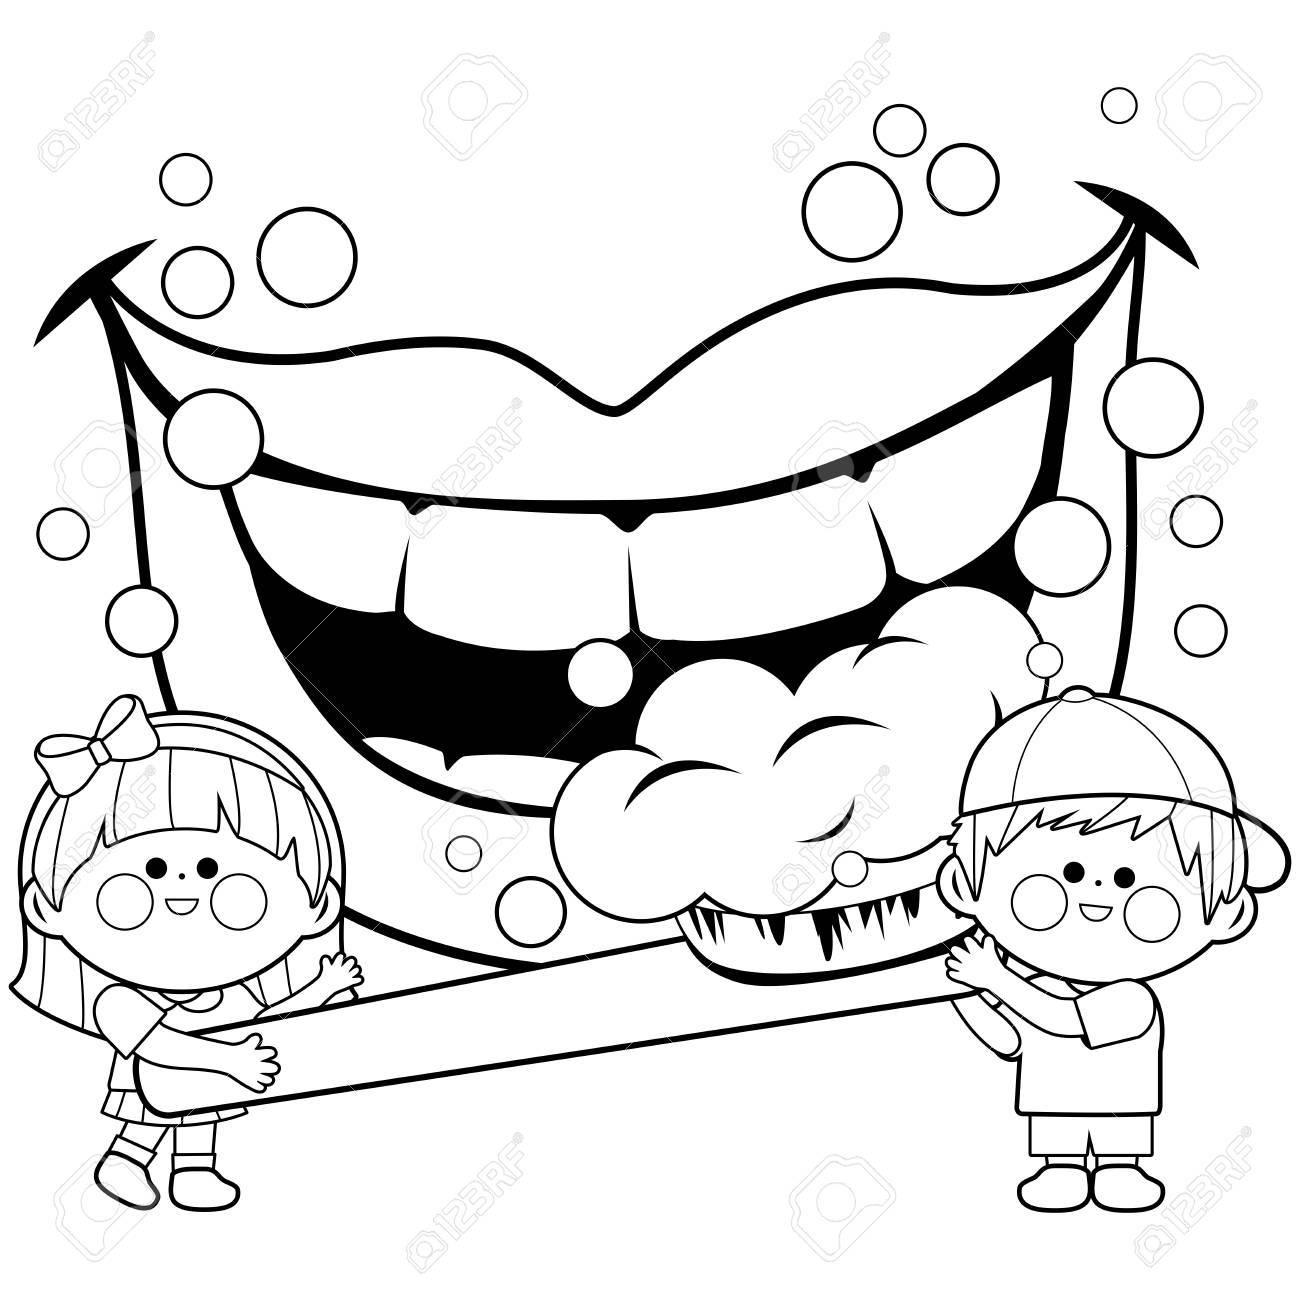 children holding a toothbrush and brushing teeth. coloring book